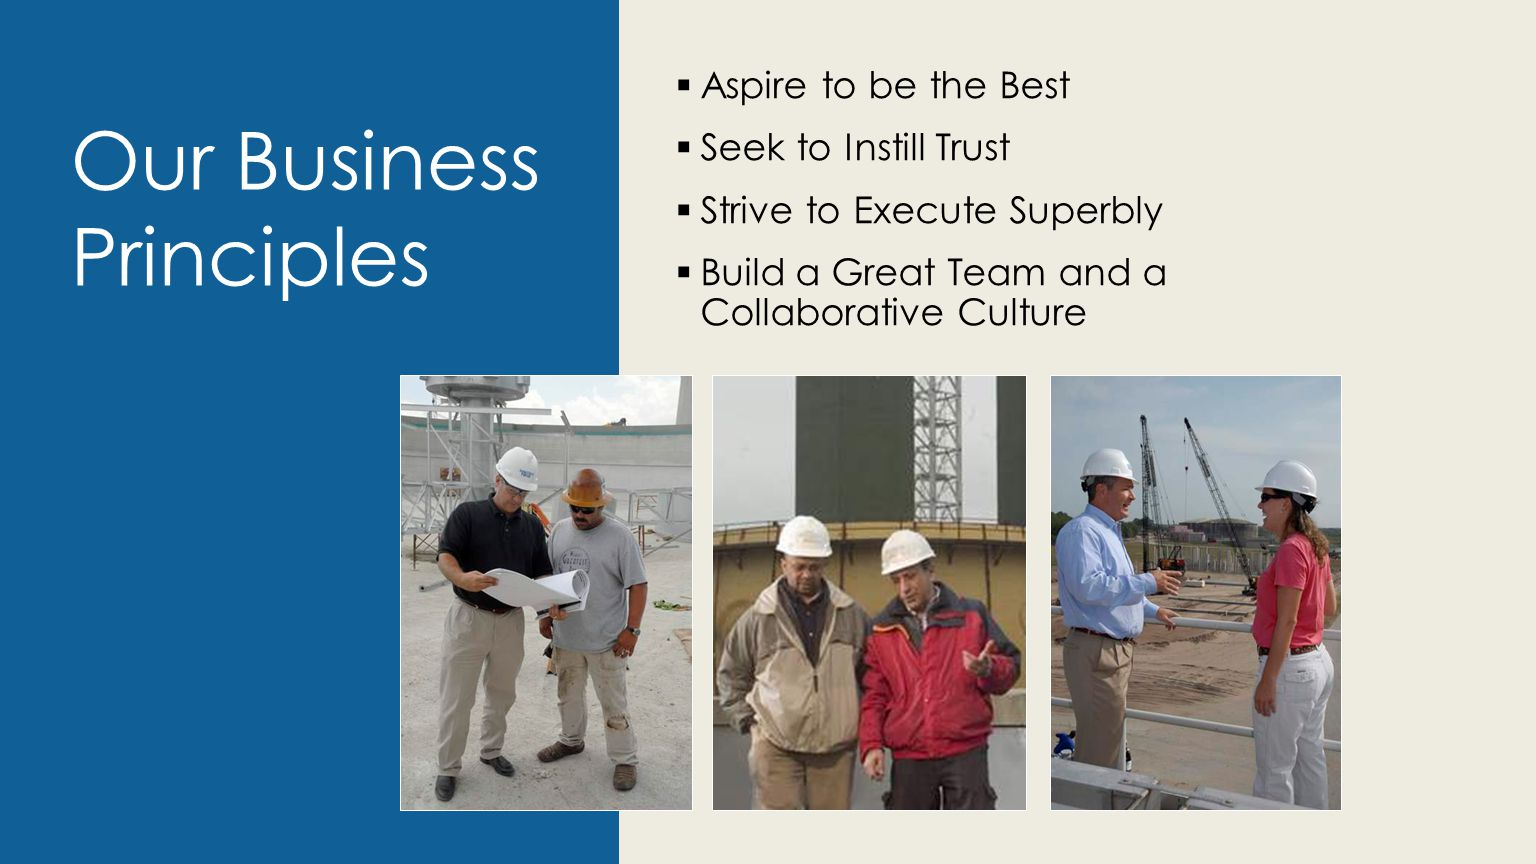 Our Business Principles  Aspire to be the Best  Seek to Instill Trust  Strive to Execute Superbly  Build a Great Team and a Collaborative Culture